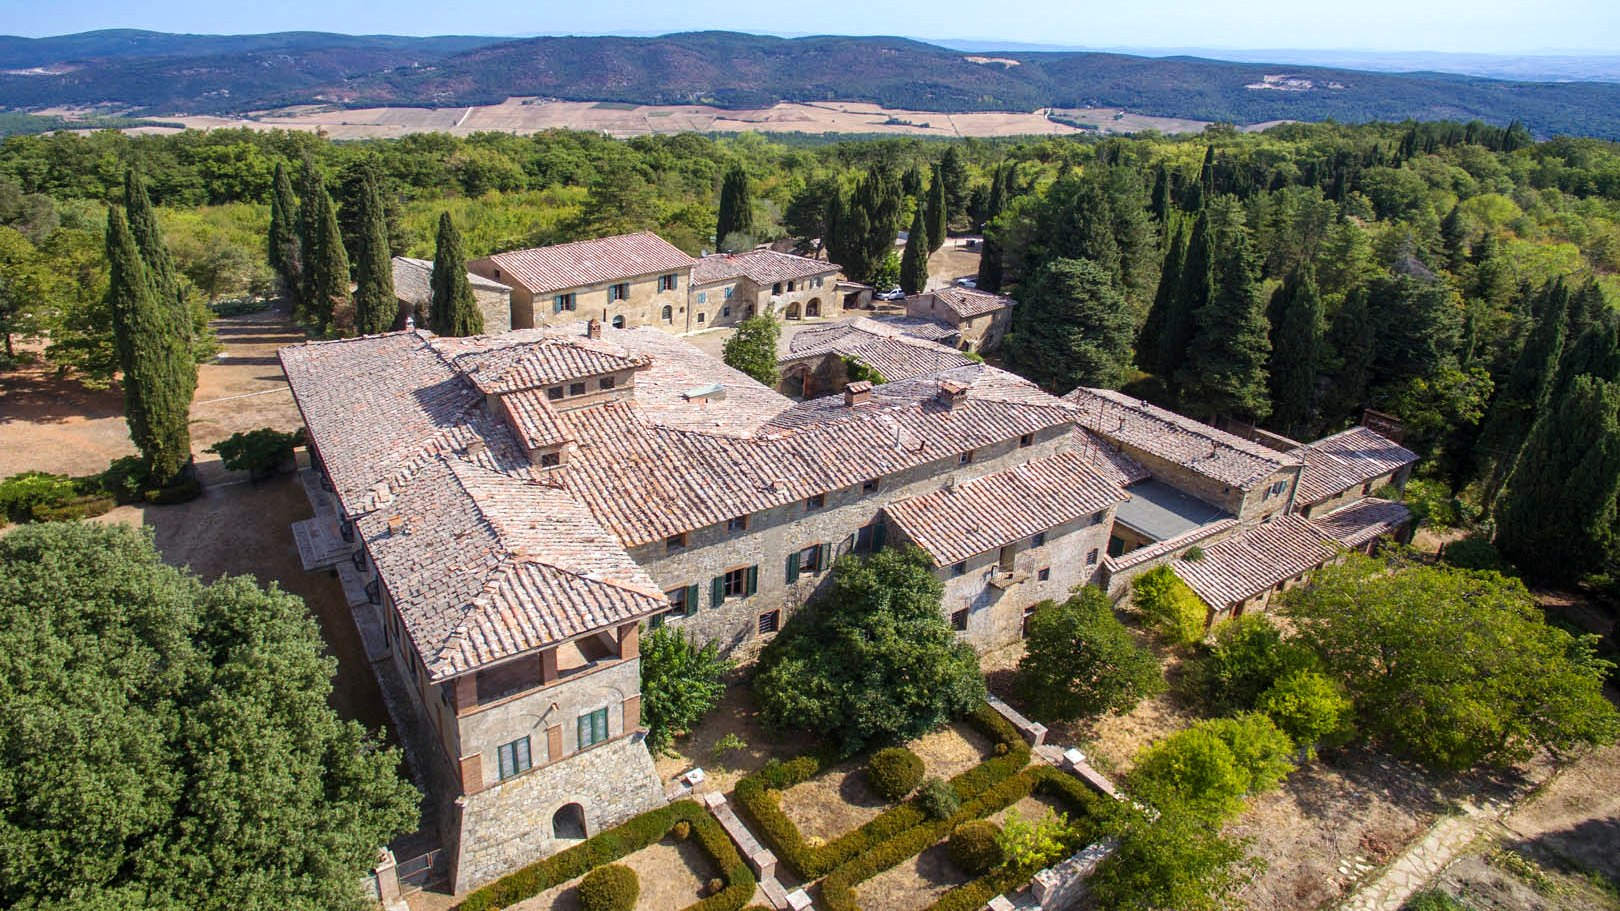 BEAUTIFUL HAMLET FOR SALE IN SIENA, TUSCANY